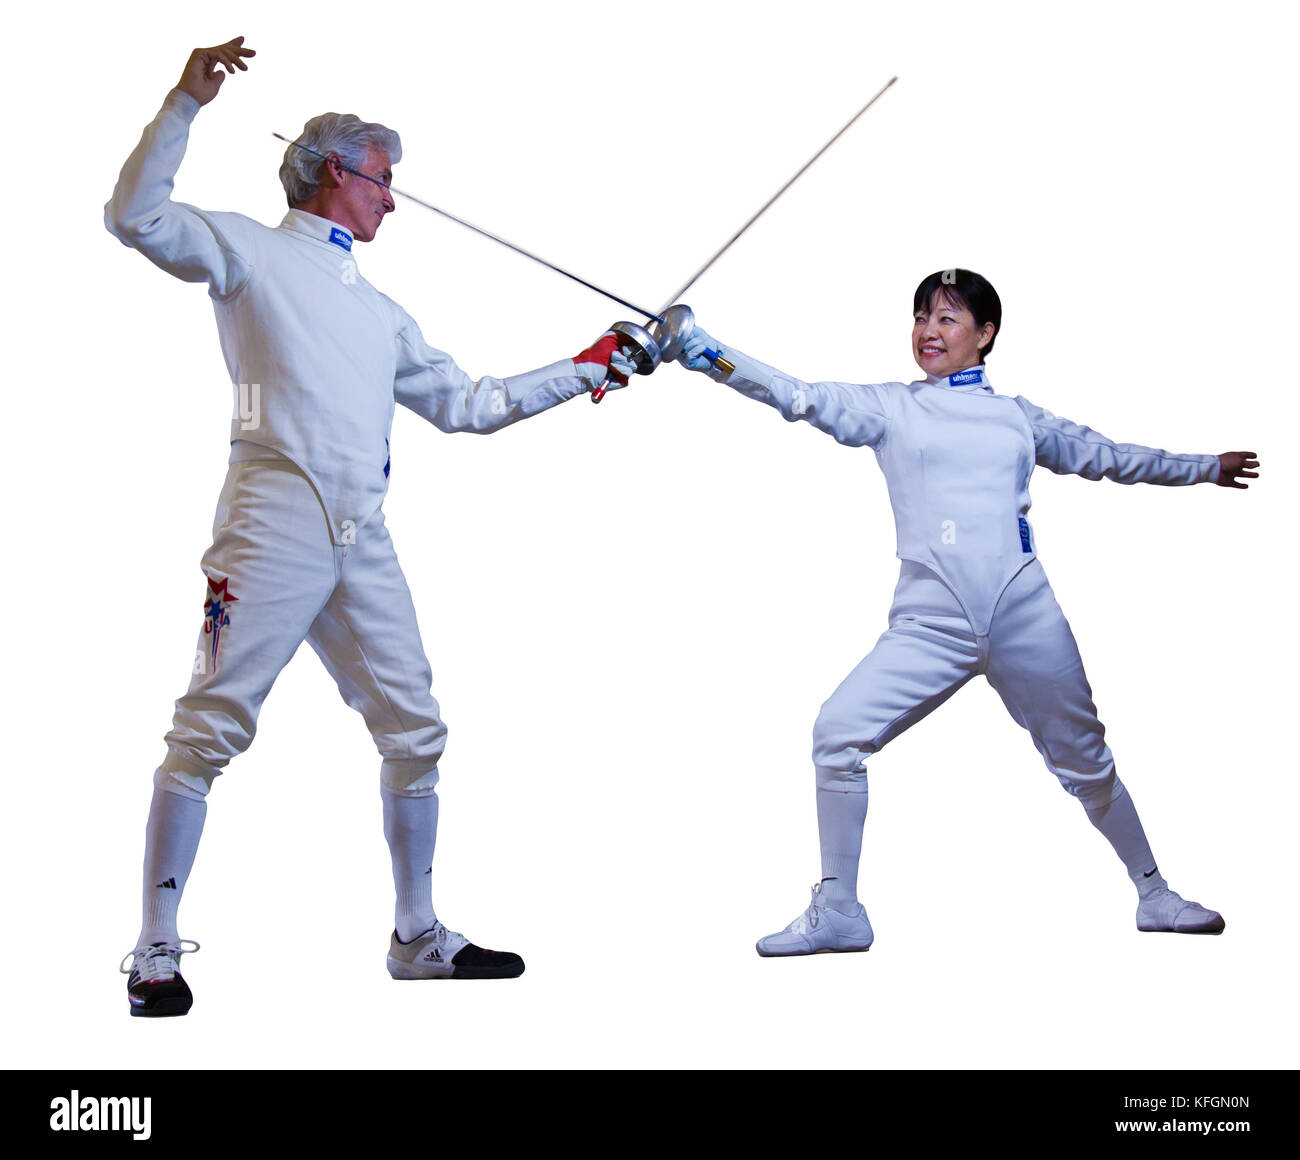 Two fencers demonstrate salute stance on Mar 20, 2011 - Stock Image